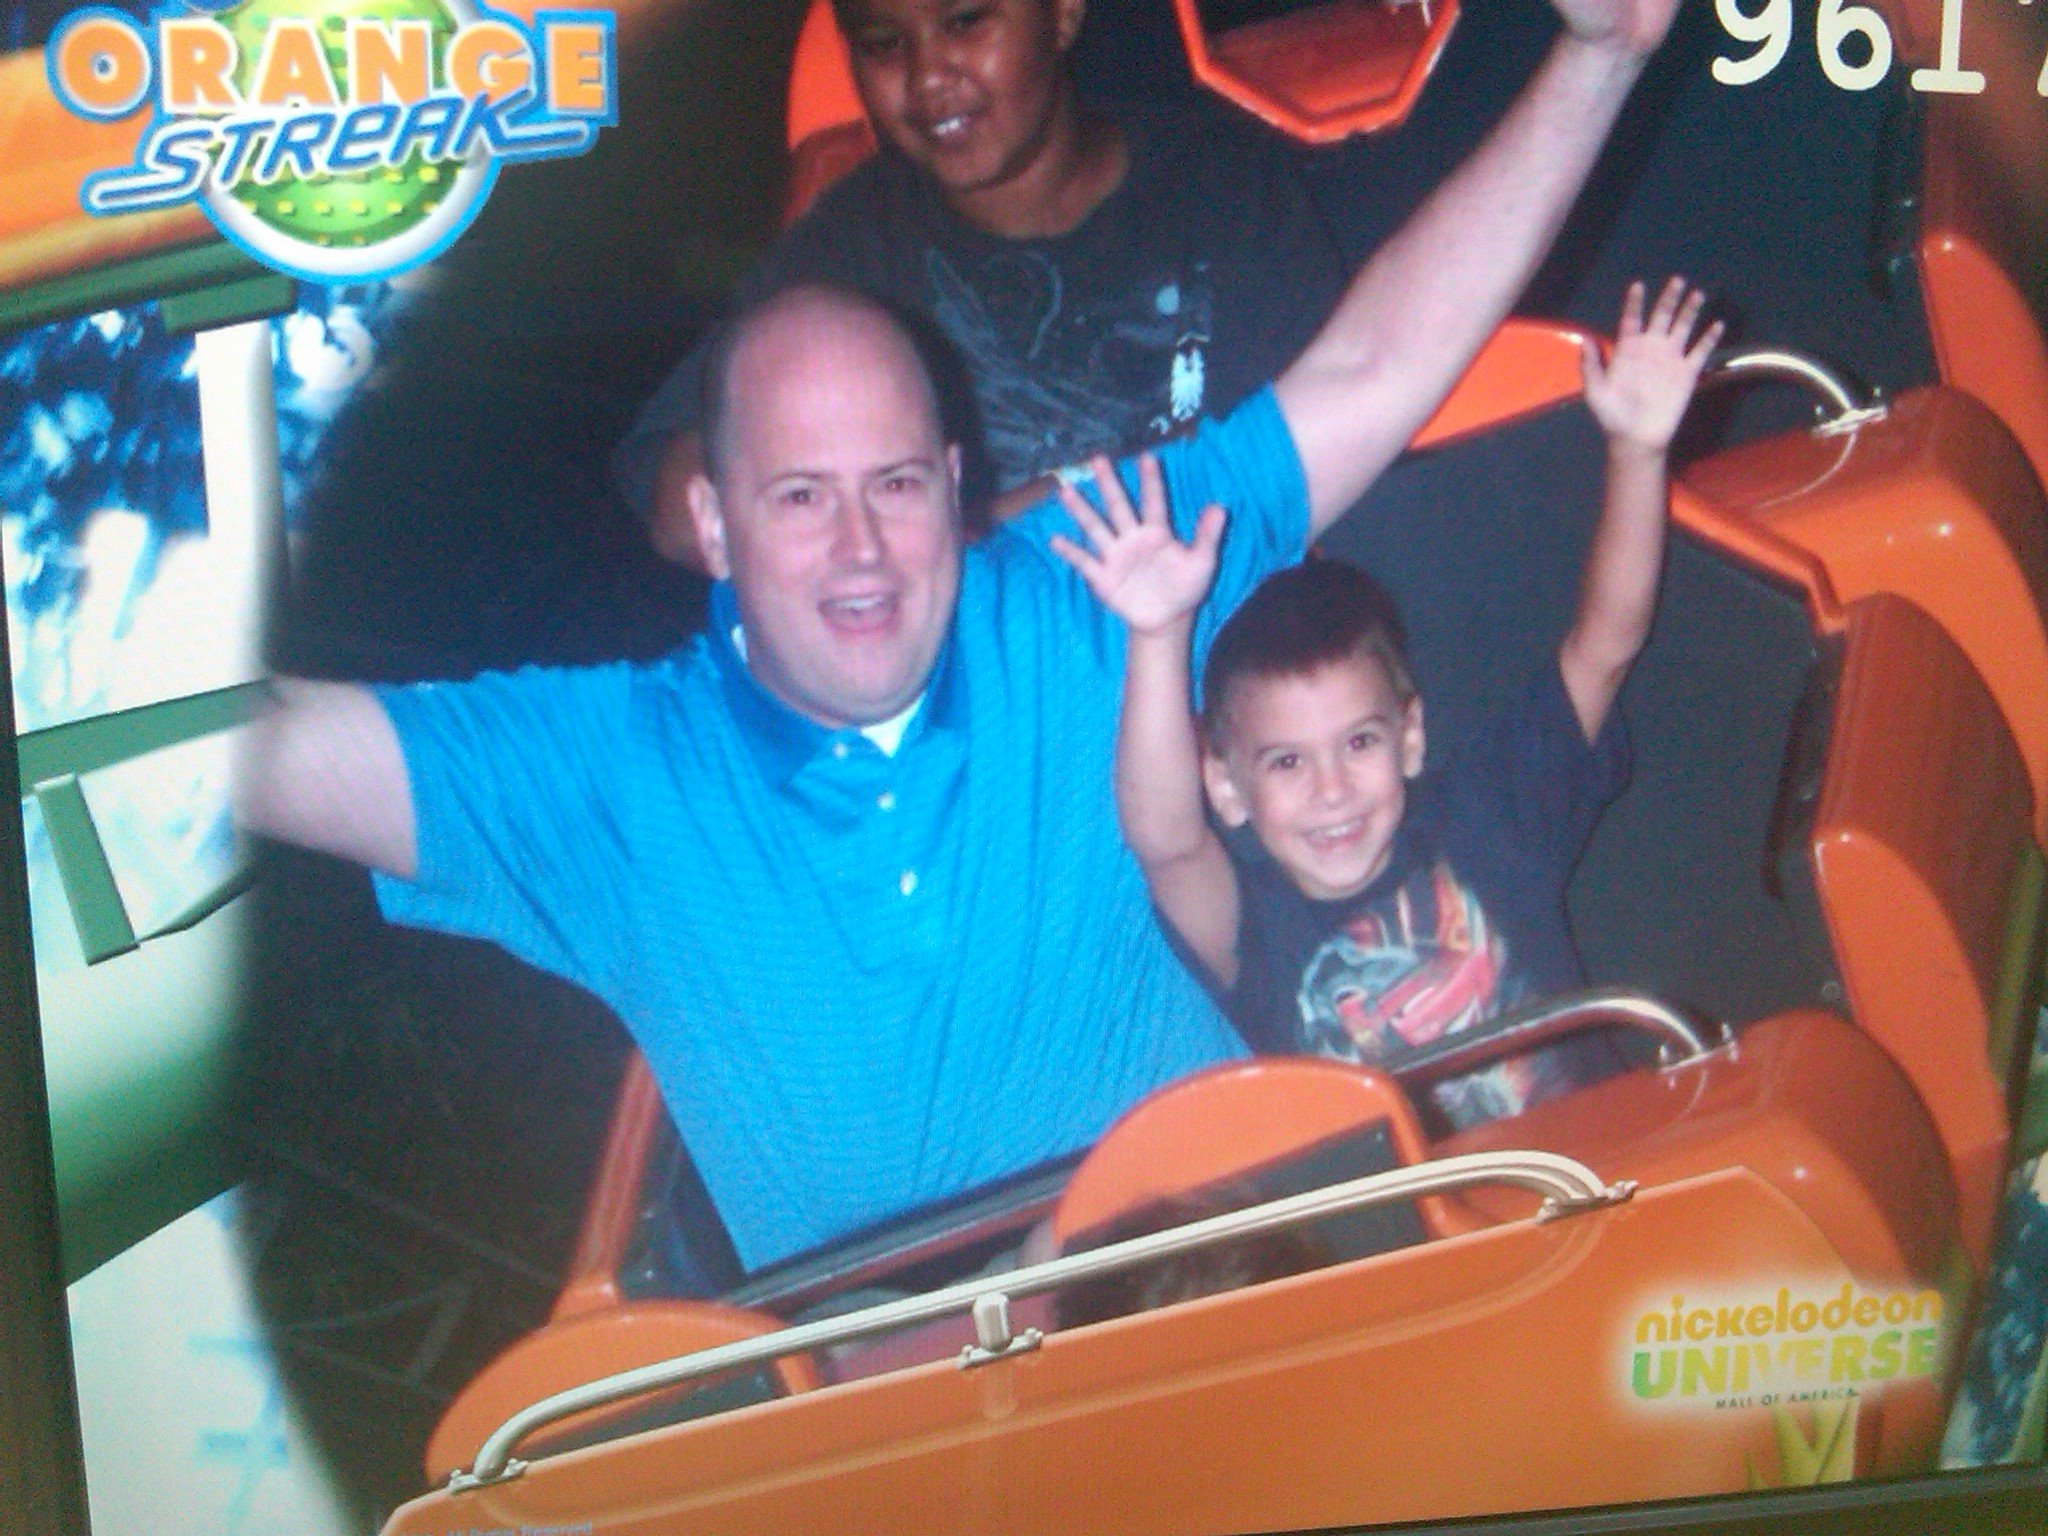 Jason Mudd on a roller coaster.